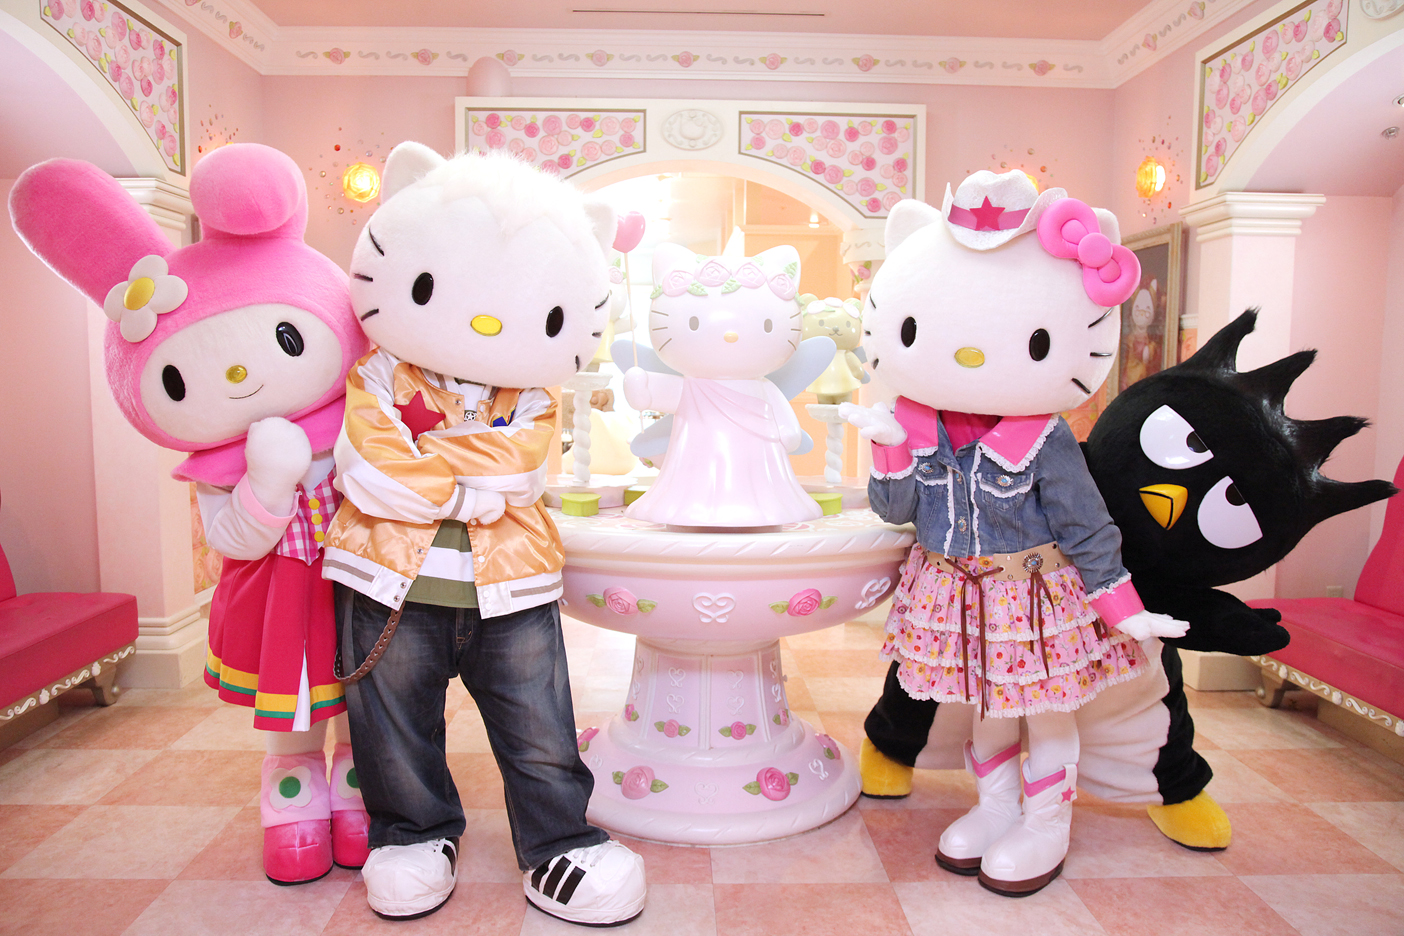 Hello-Kitty-and-friends-From-L-R-My-Melody-Dear-Daniel-Hello-Kitty-Bad-Badtz-maru